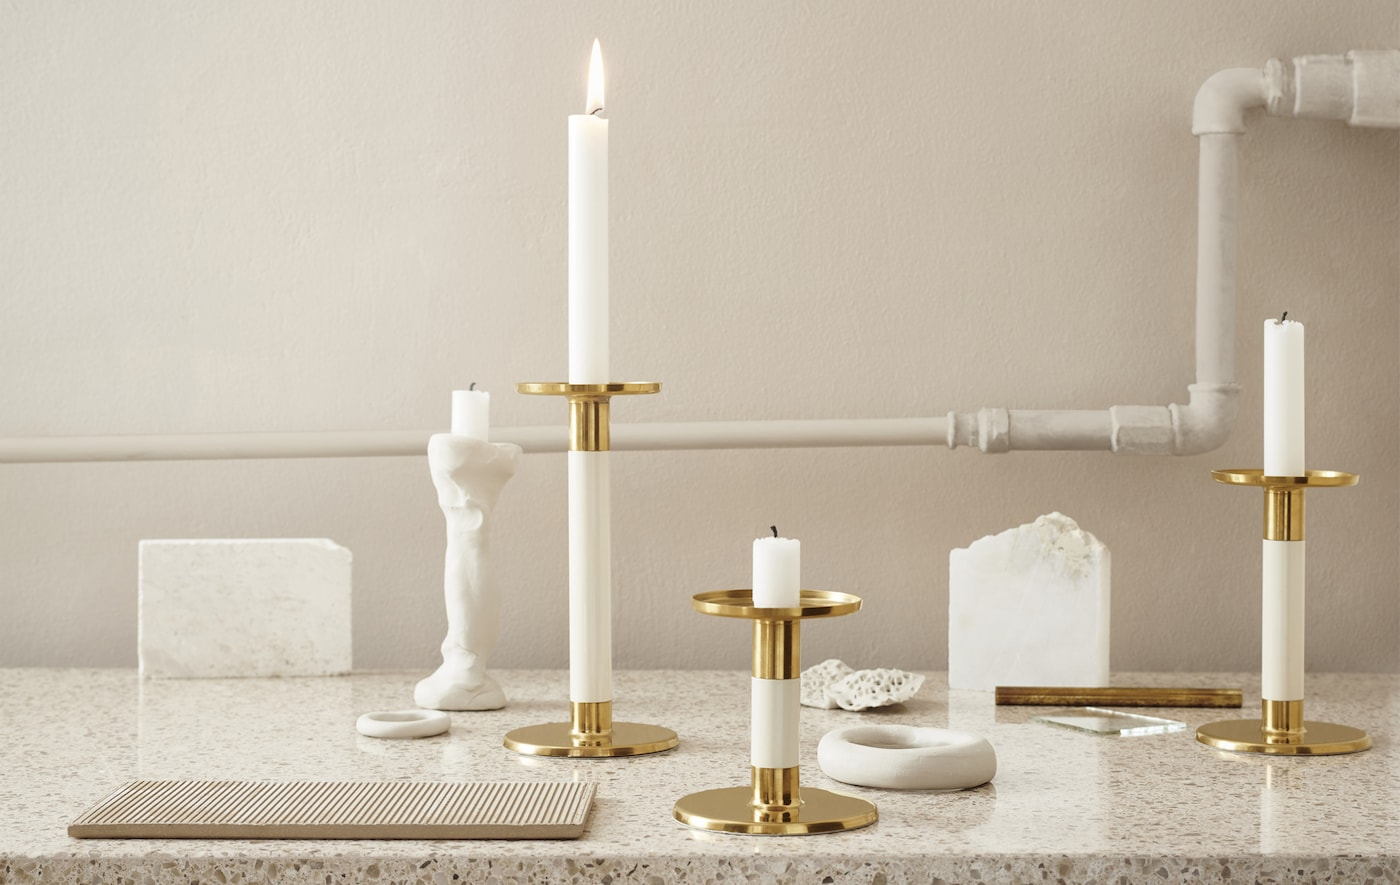 Ivory and gold-colored candlesticks displayed on a marble worktop.